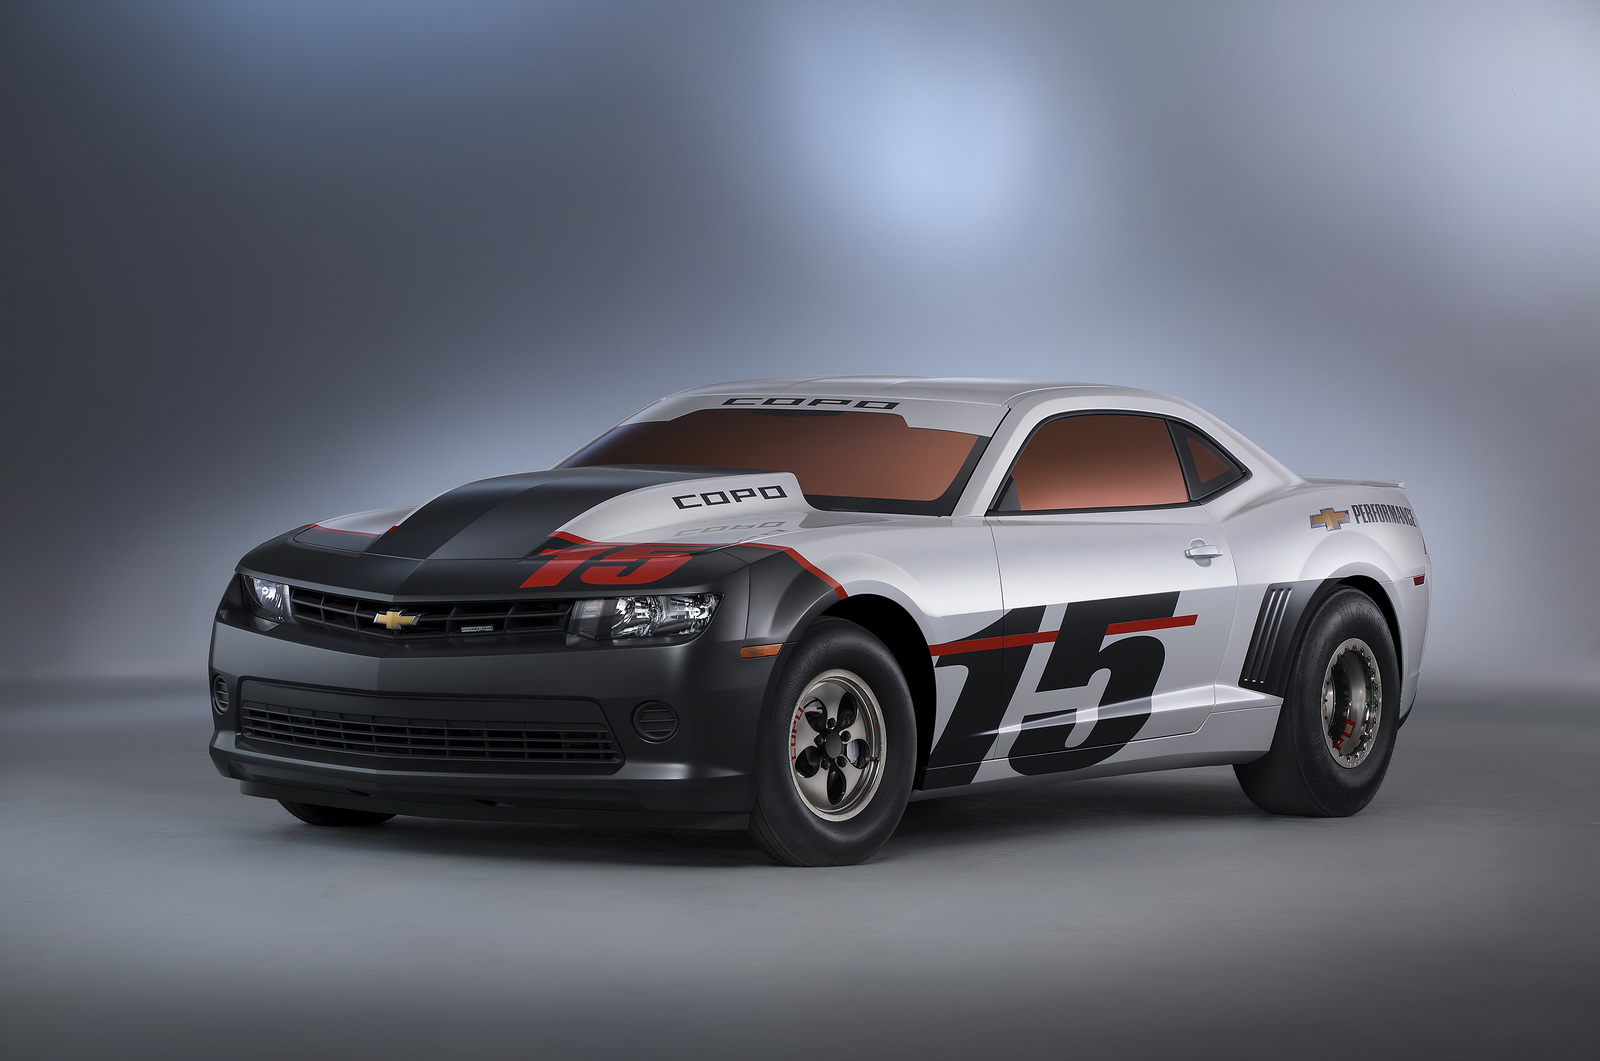 2015 chevrolet copo camaro american muscle car guide. Black Bedroom Furniture Sets. Home Design Ideas